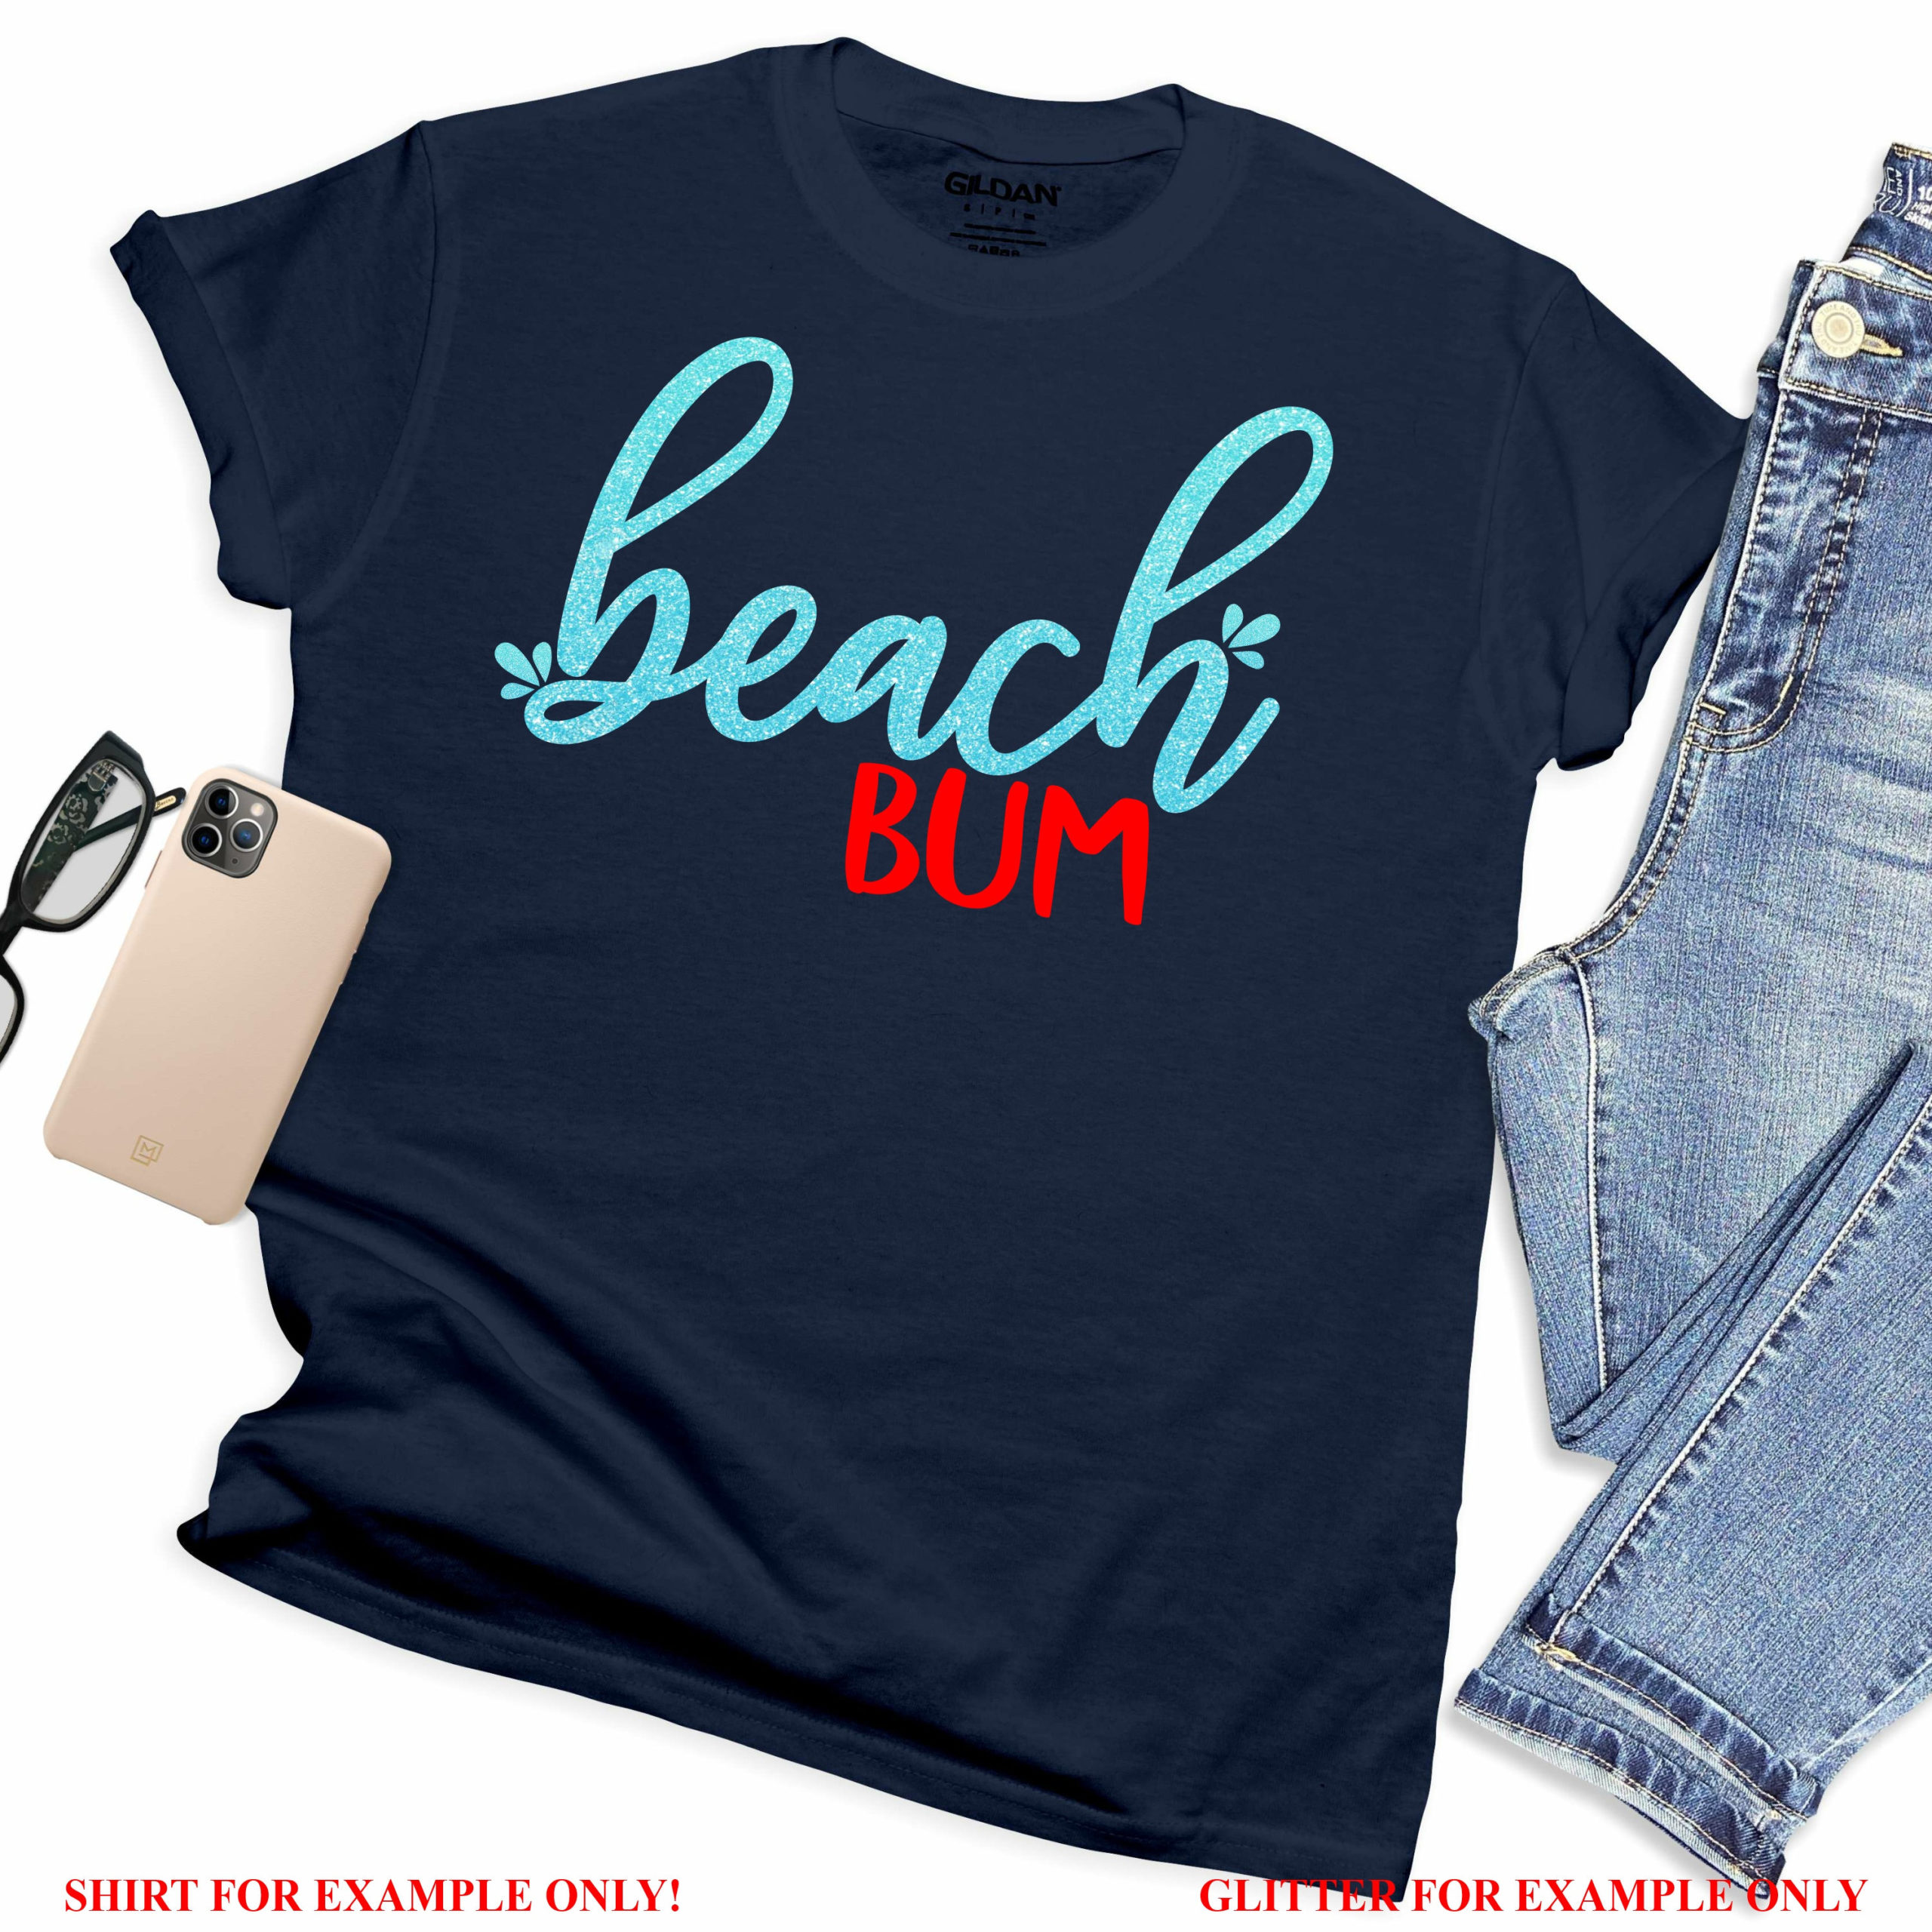 Beach-bum-svg-beach-svg-babe-svg-beachy-svg-vacation-svg-tshirt-travel-adventure-svg-for-cricutsilhouette-cut-file-5ef78be7